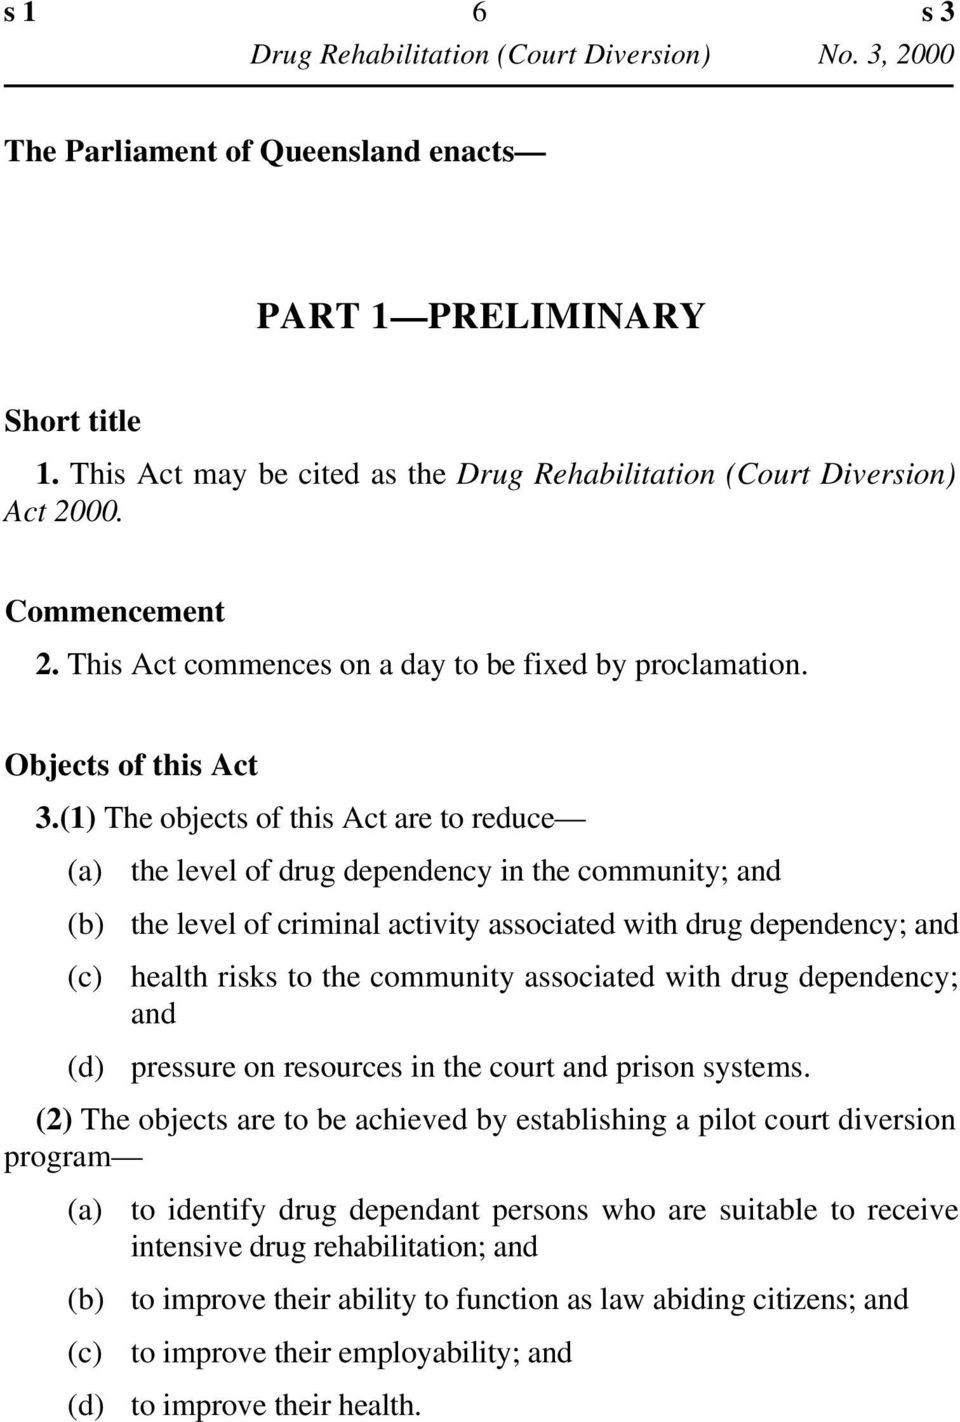 (1) The objects of this Act are to reduce (d) the level of drug dependency in the community; and the level of criminal activity associated with drug dependency; and health risks to the community